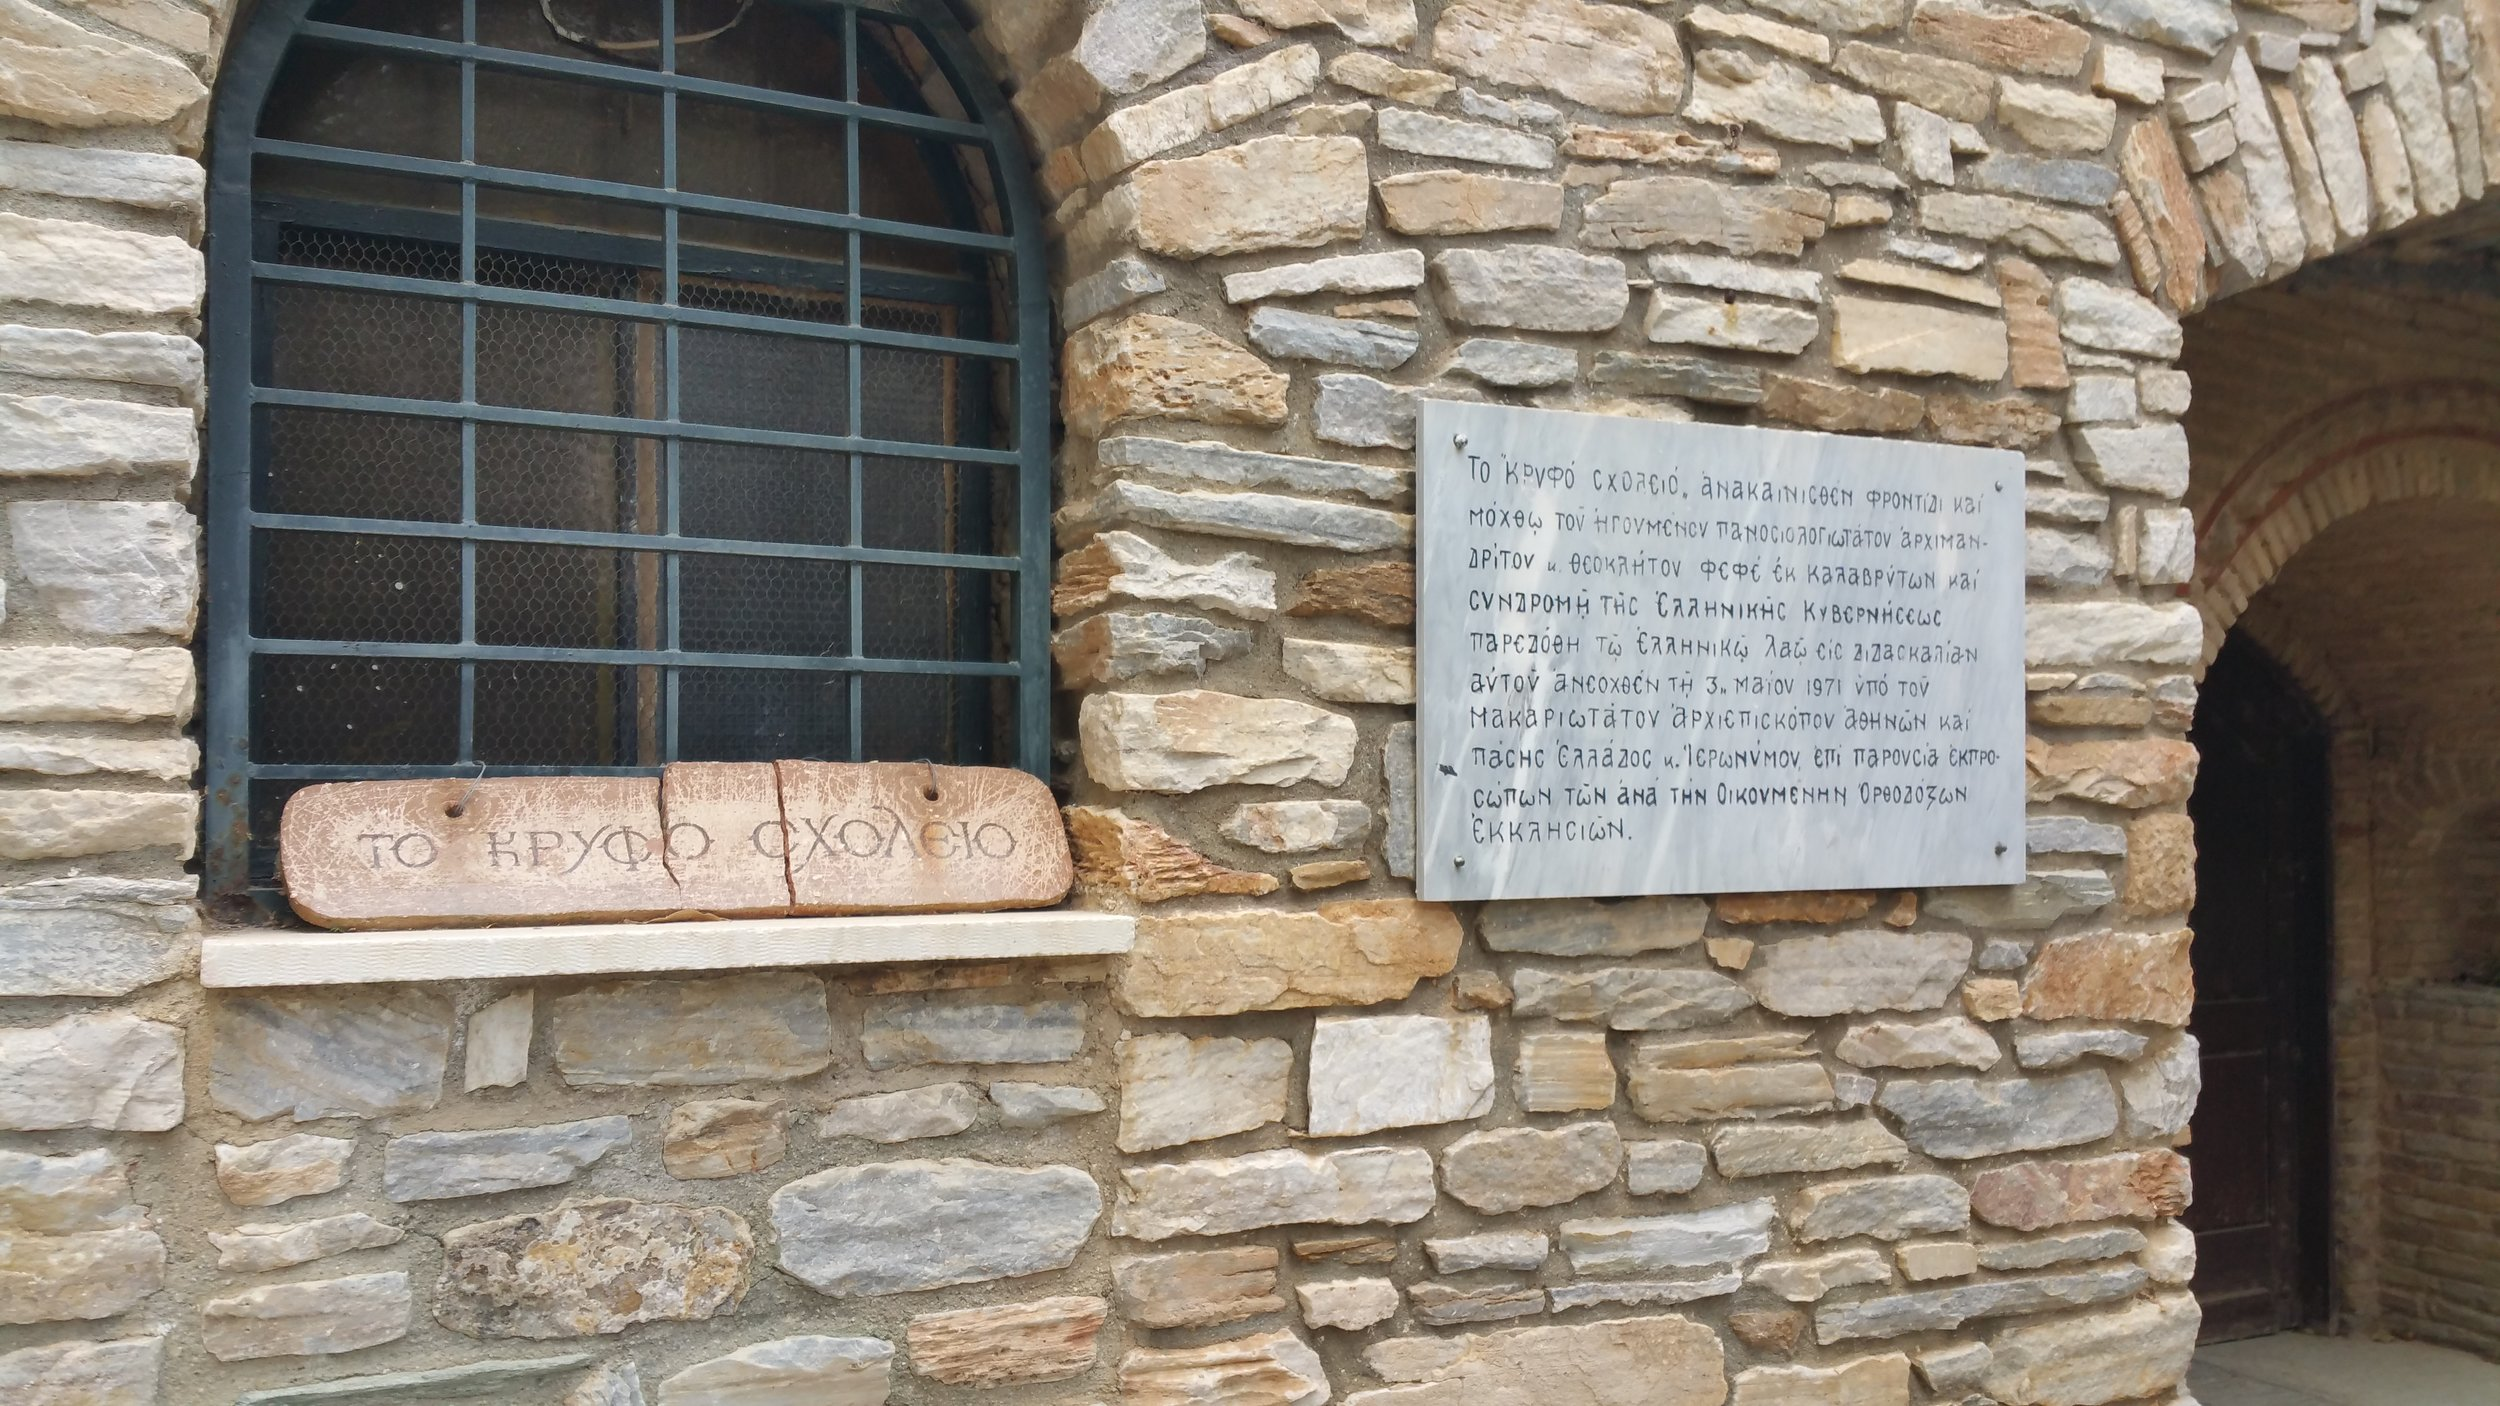 The entrance to the Krifo Scholeio, the Secret School during the time of the Ottoman Occupation where monks taught children and adults the fundamentals of the Greek language and religion